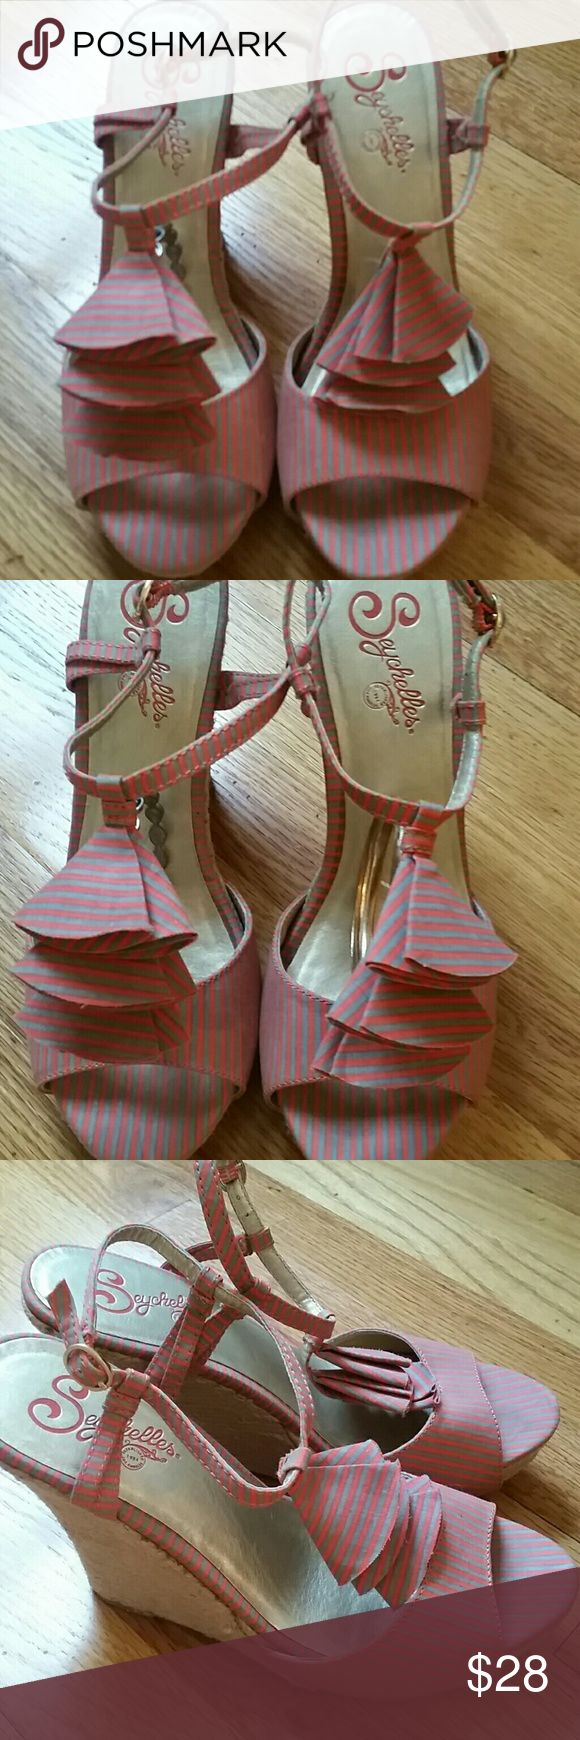 SEYCHELLES  striped wedges coral and grey striped wedges 7.5 Seychelles Shoes Wedges